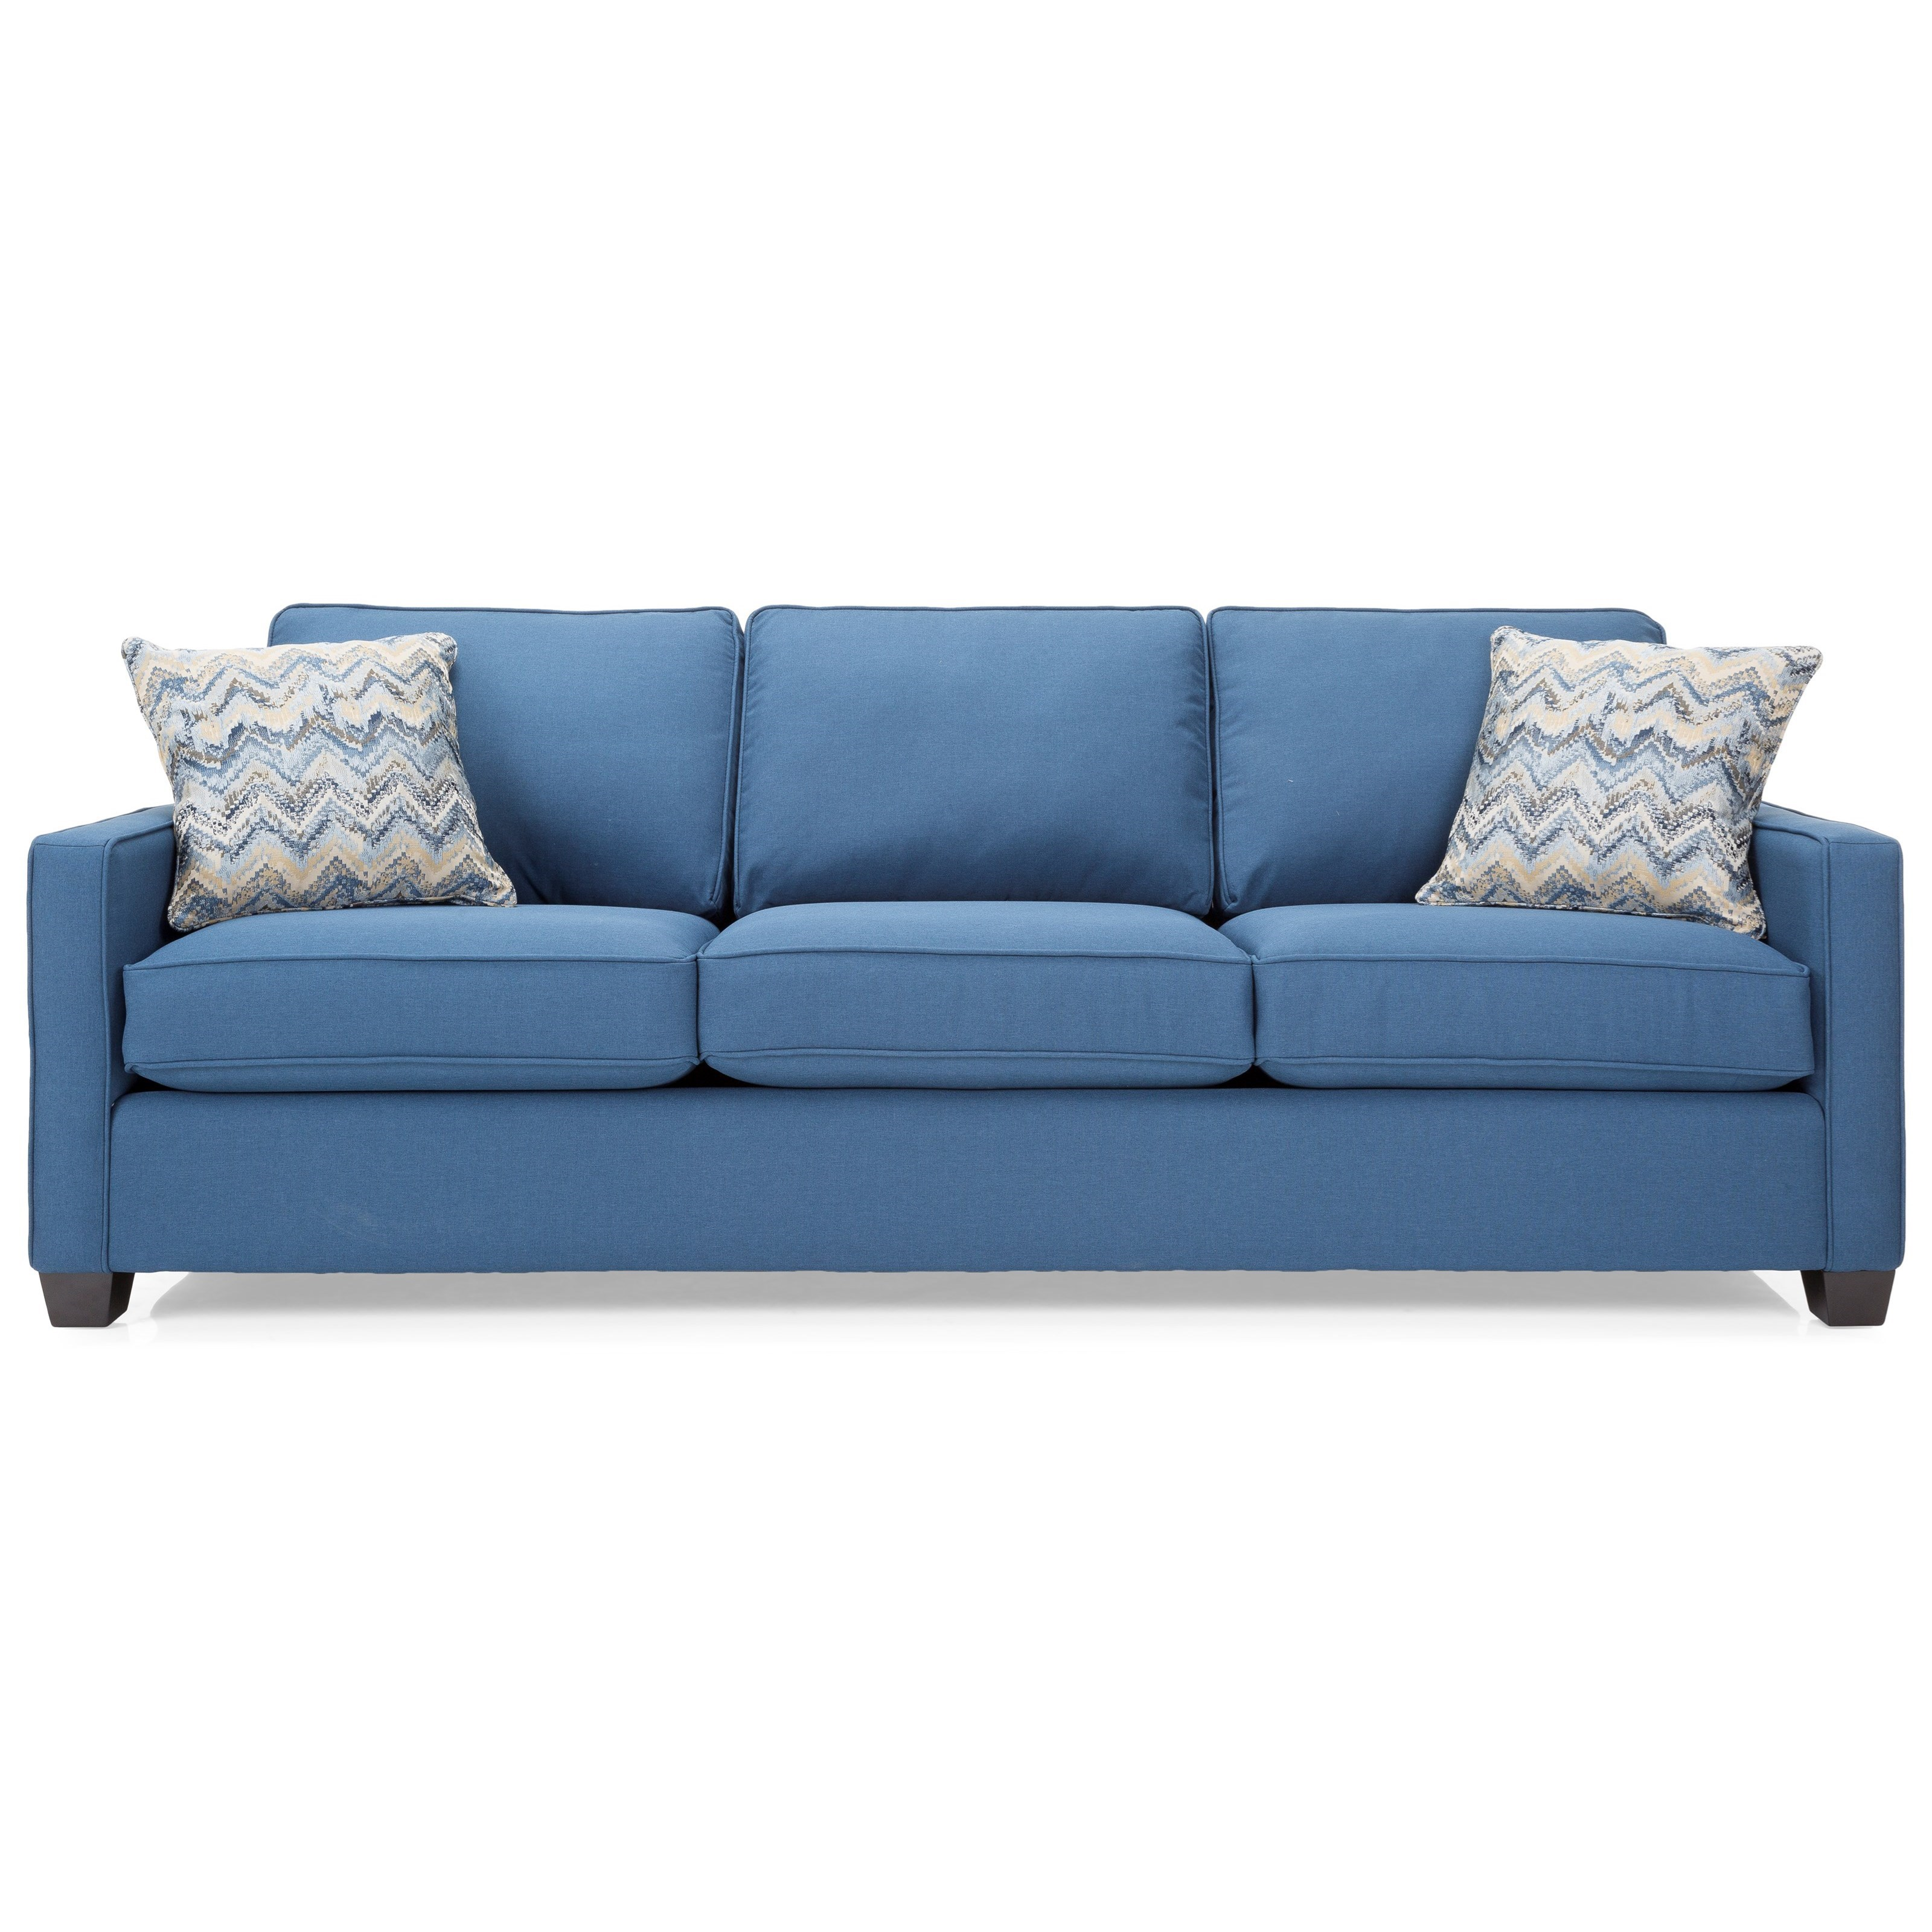 2855 Sofa by Decor-Rest at Johnny Janosik